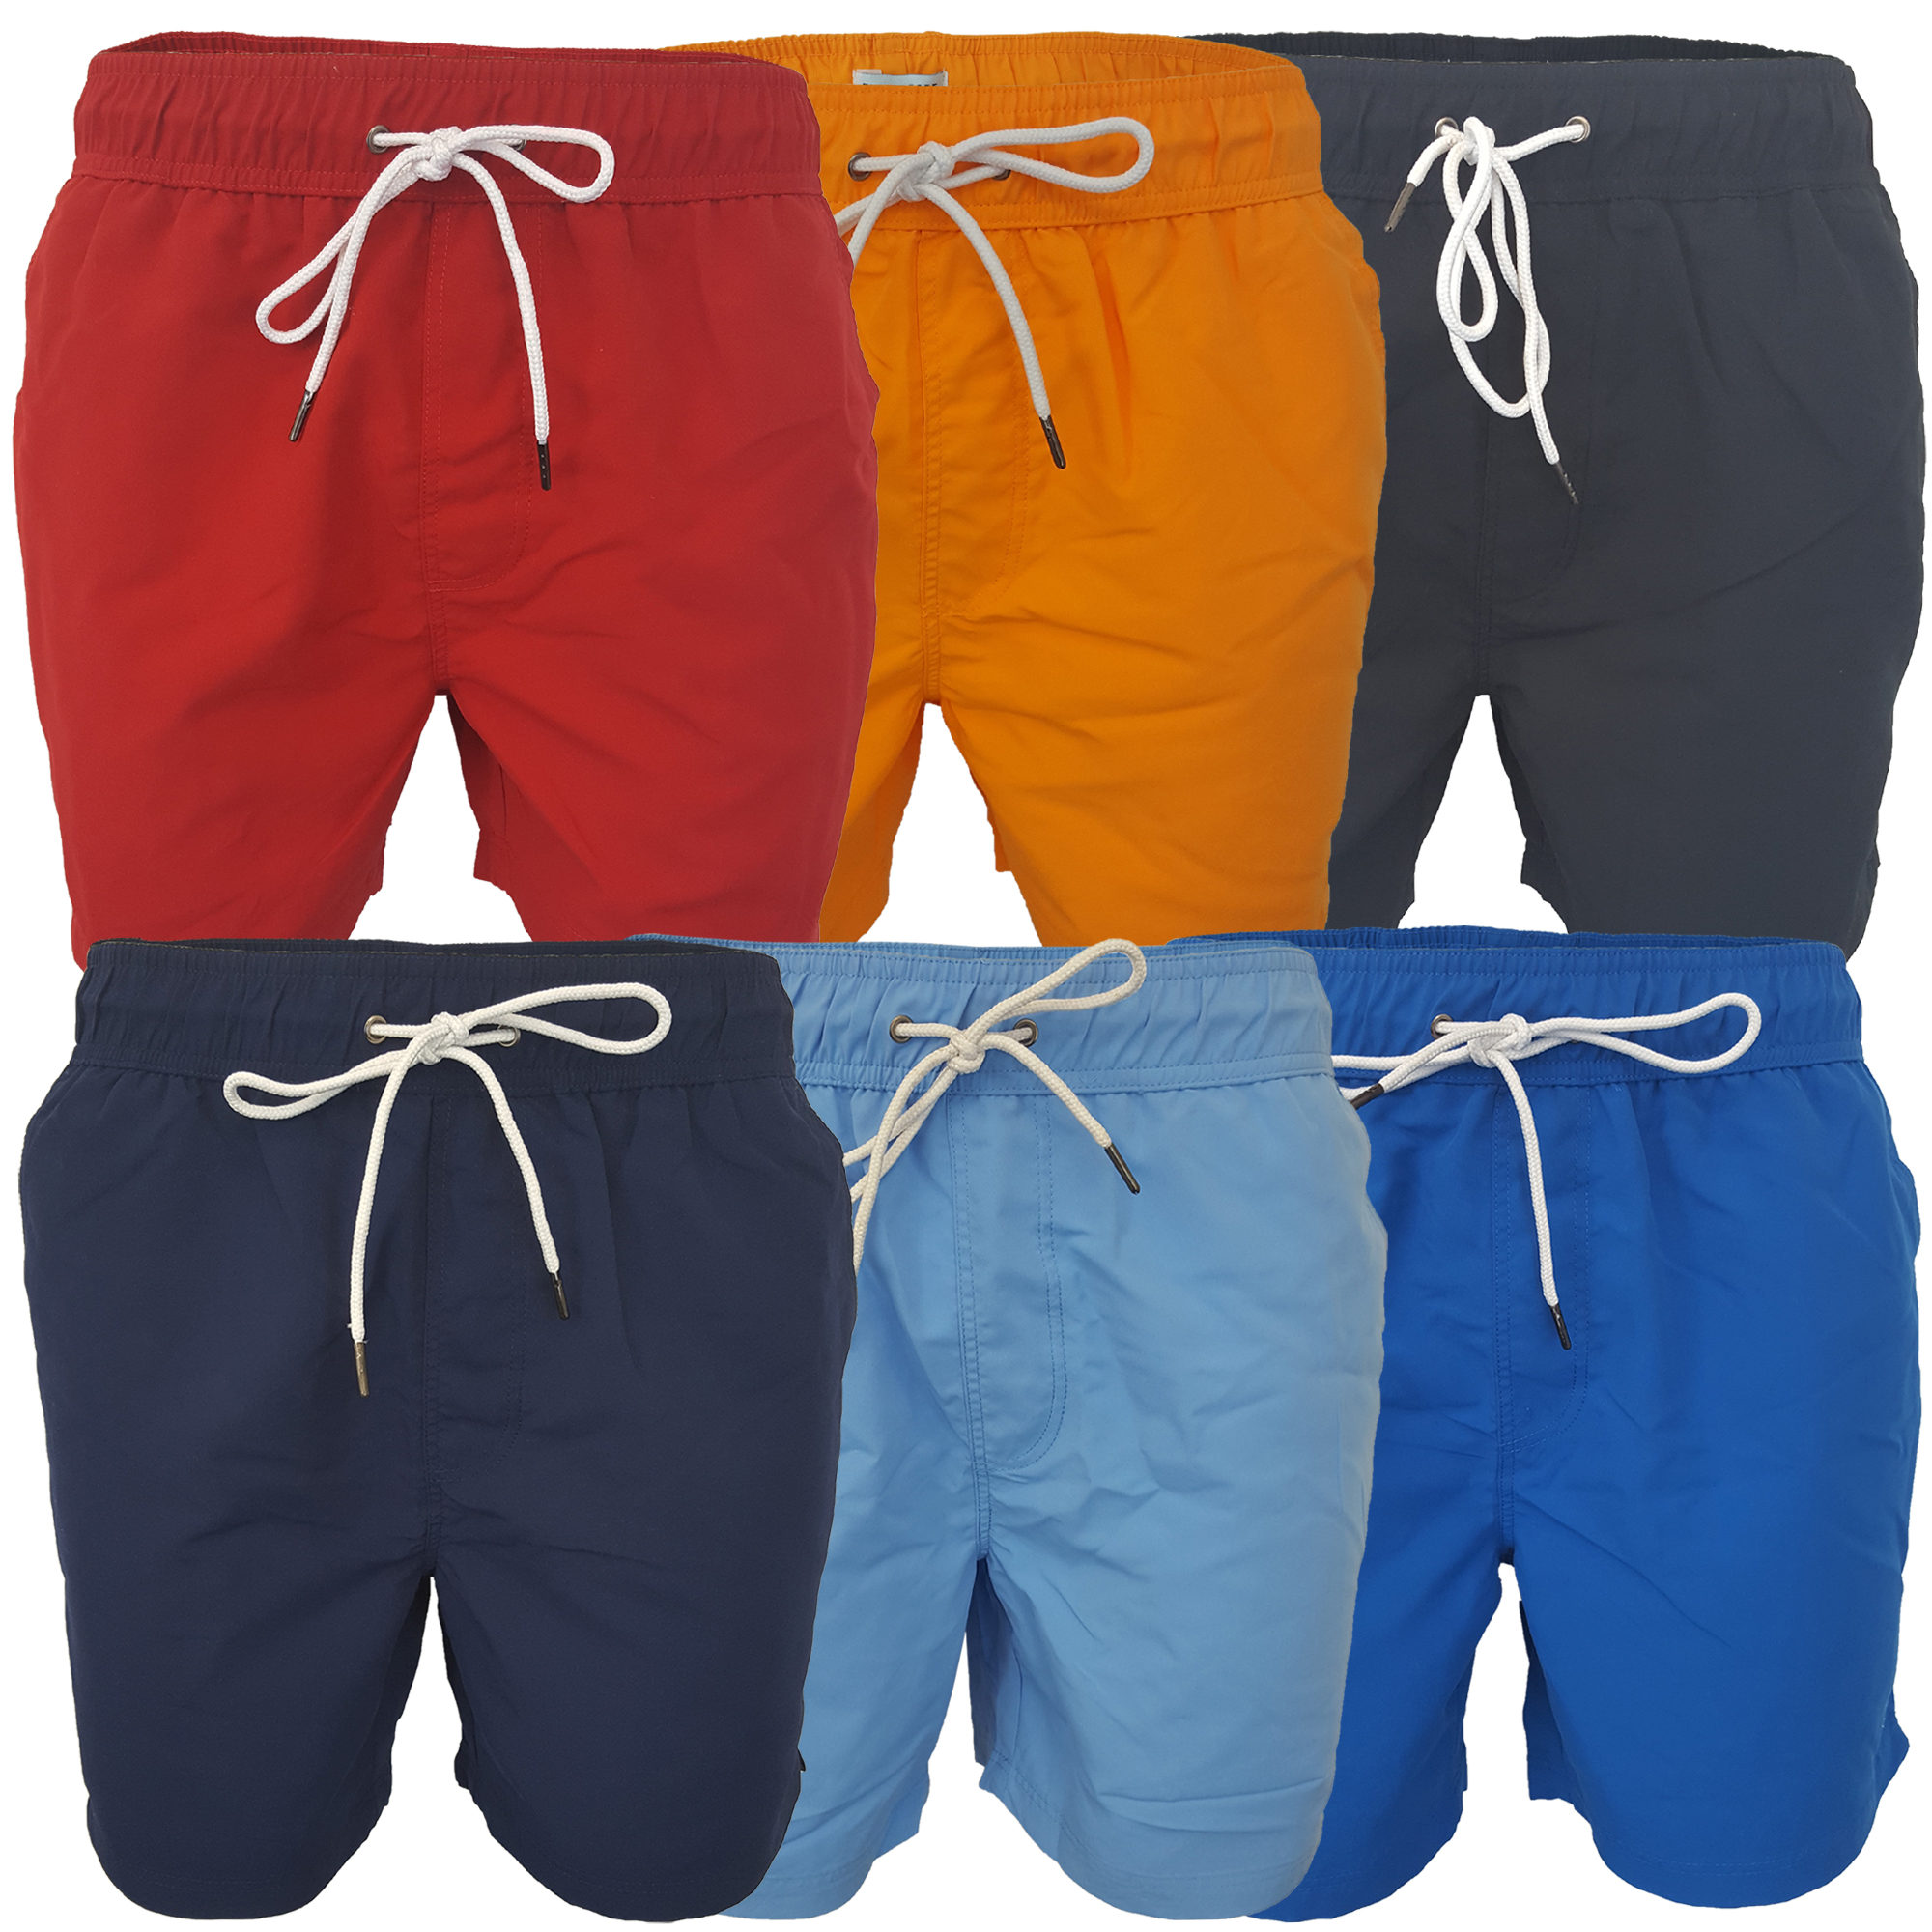 bd7681879b Mens Swimming Shorts Threadbare Marina Knee Length Designer Trunks ...